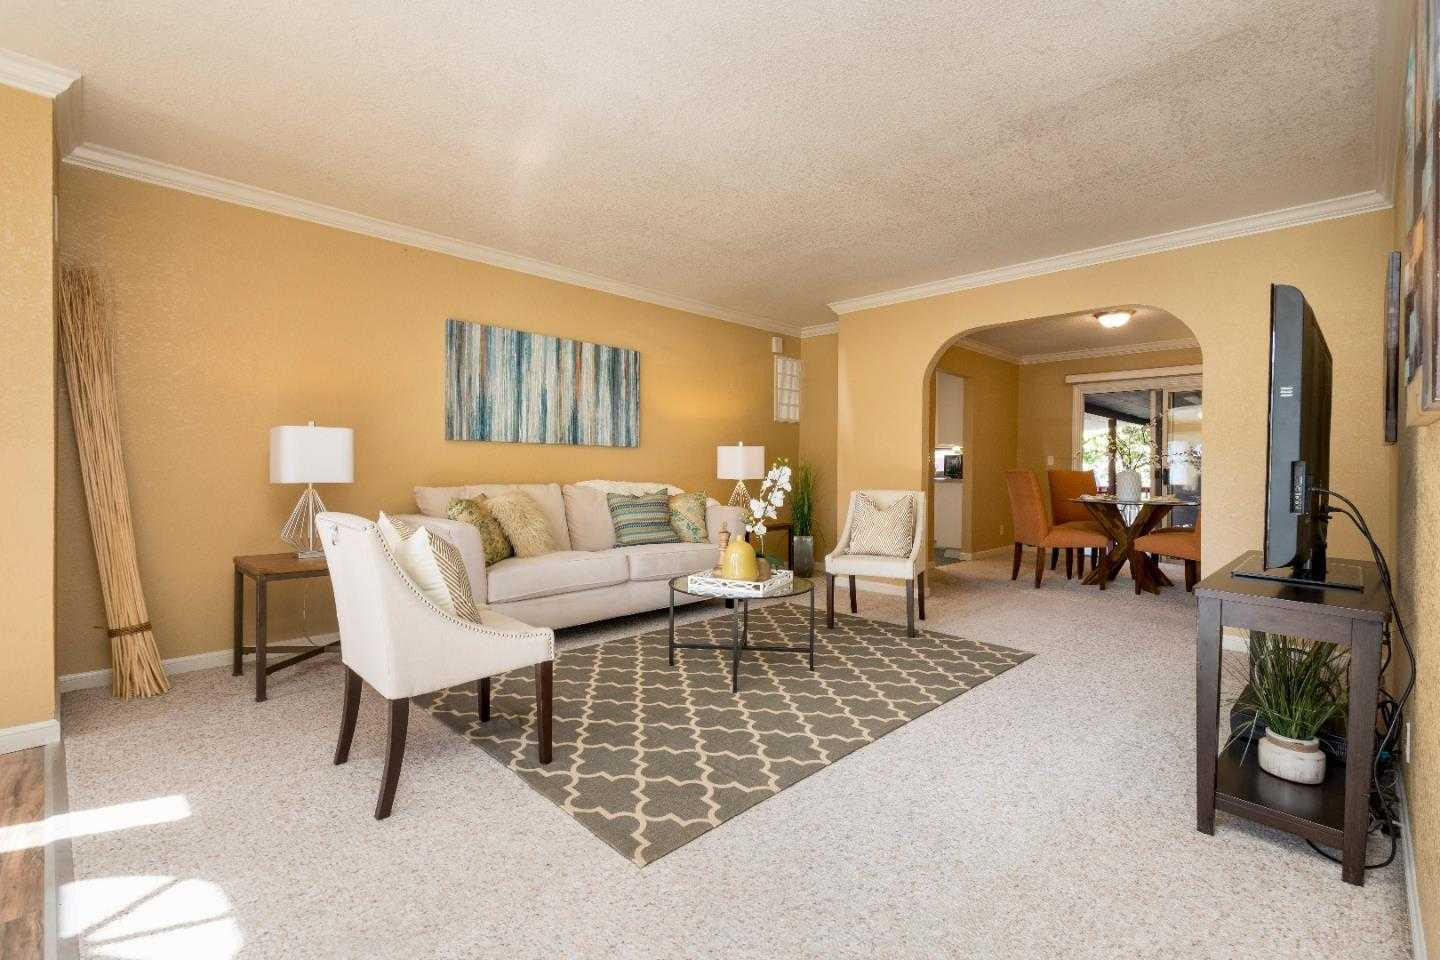 $1,195,000 - 4Br/2Ba -  for Sale in Redwood City